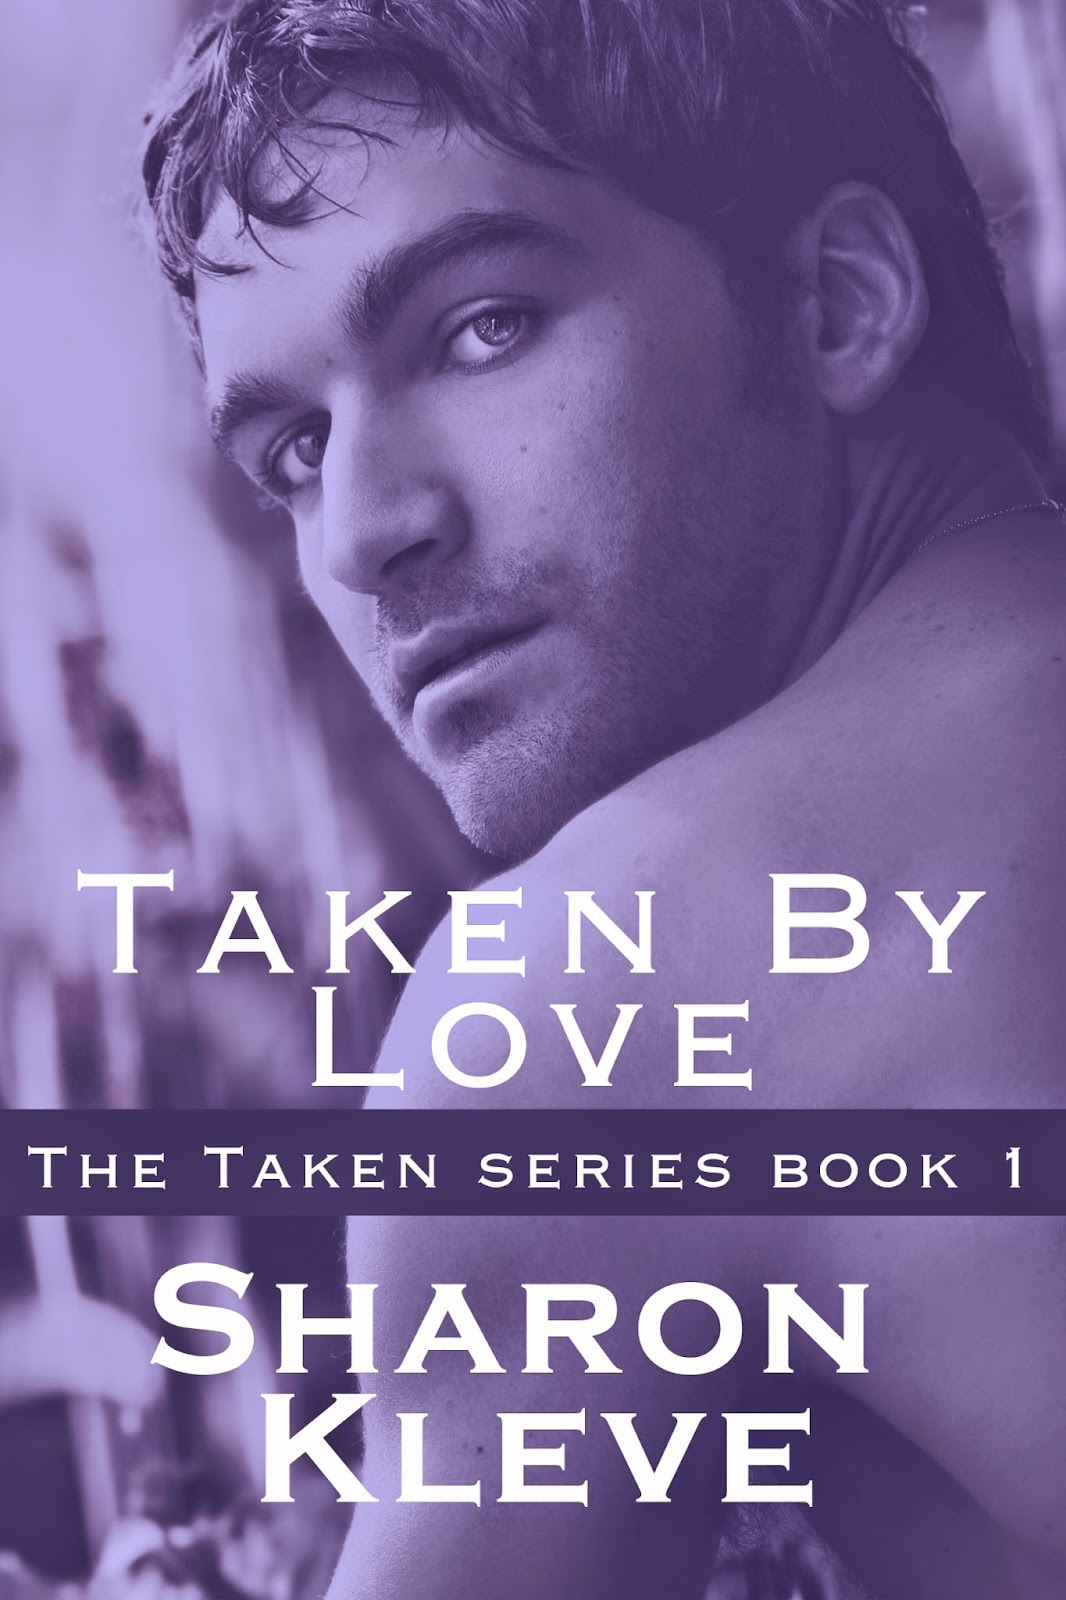 http://www.amazon.com/Taken-Love-Book-1-ebook/dp/B00UW7I6TI/ref=sr_1_8?ie=UTF8&qid=1427655185&sr=8-8&keywords=sharon+kleve